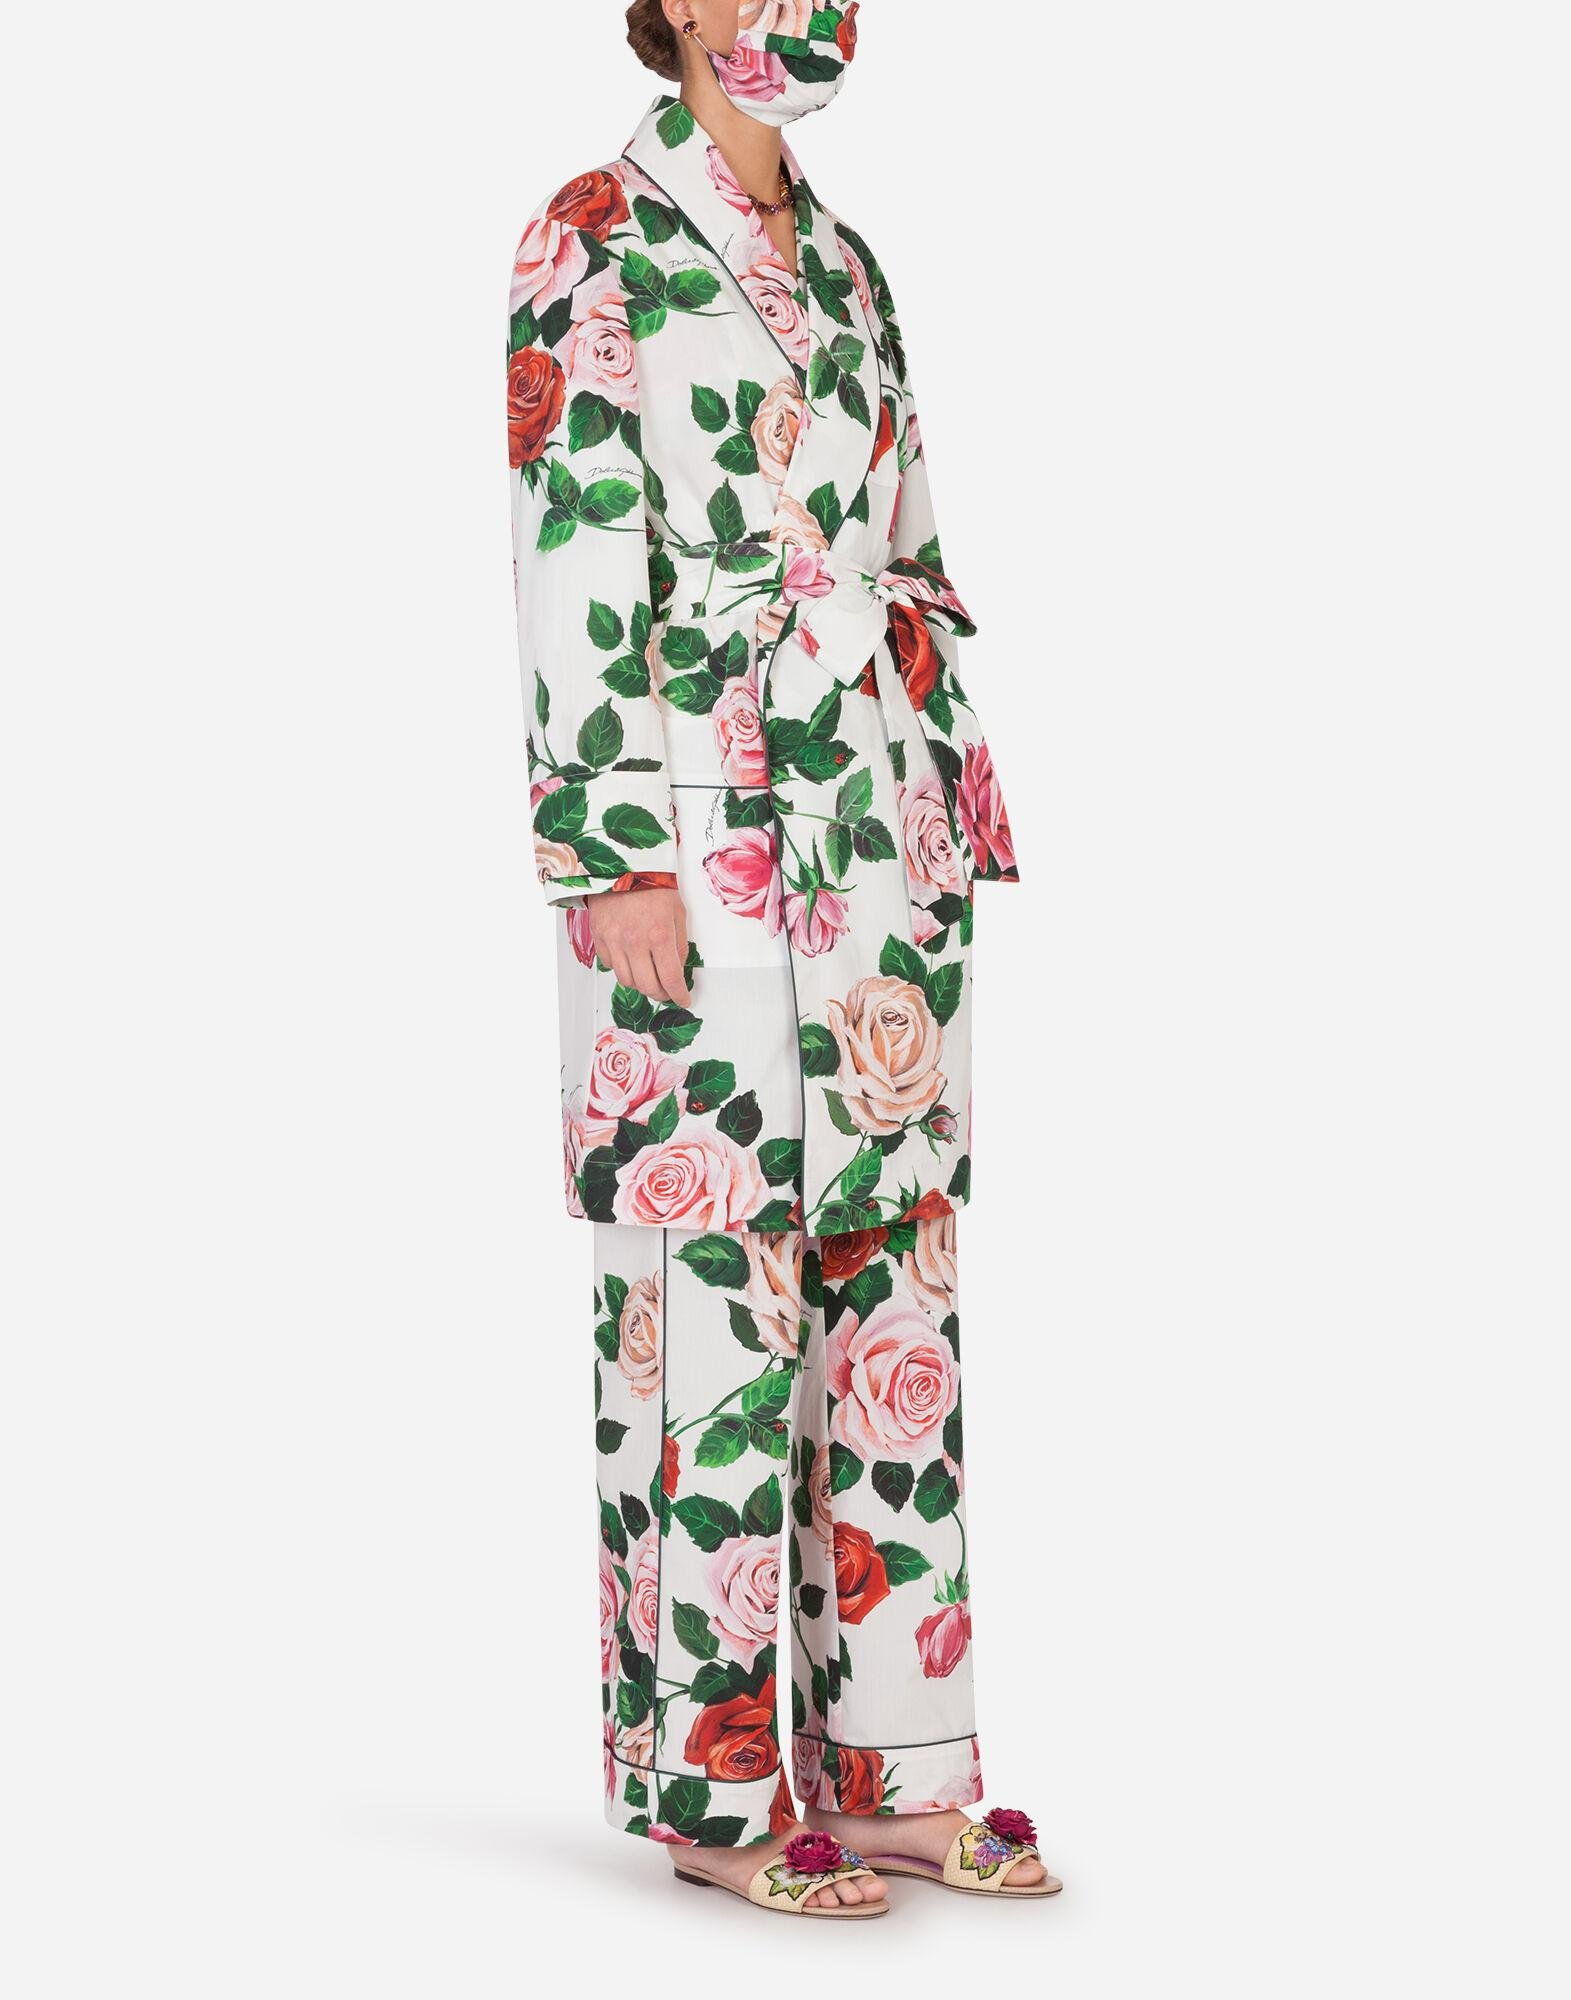 Rose-print robe with matching face mask 2